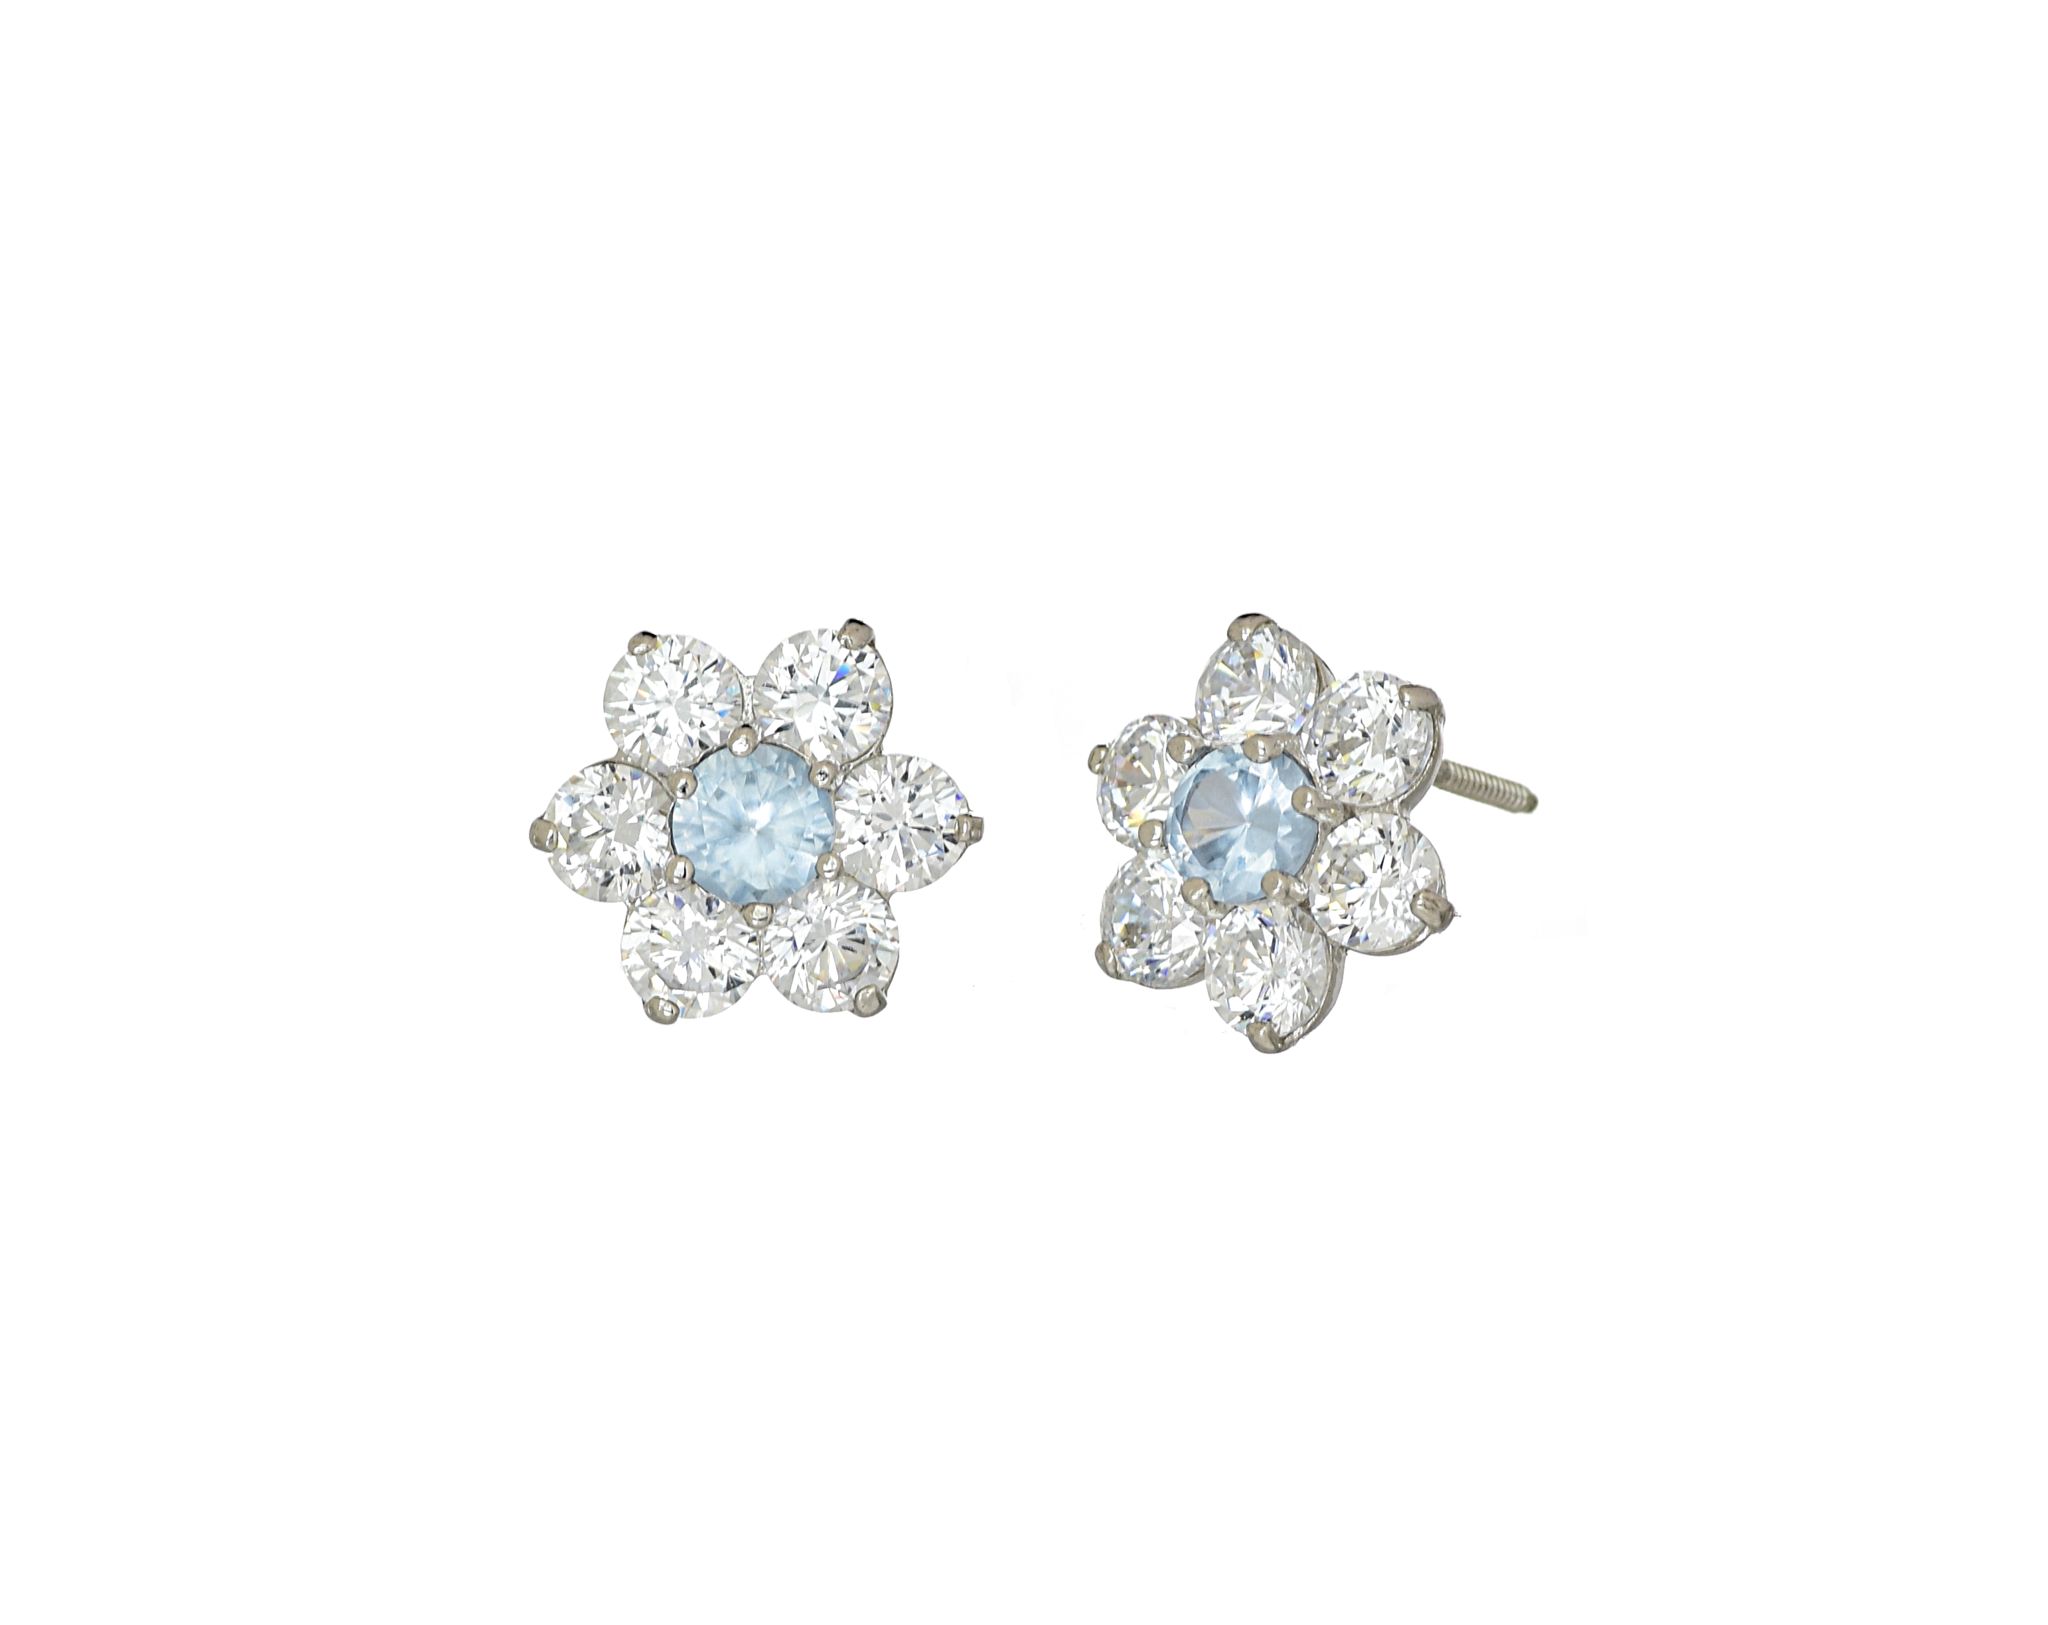 cluster erasmus st jewellery frangipani a pearl earrings style product crocheted fbhldn